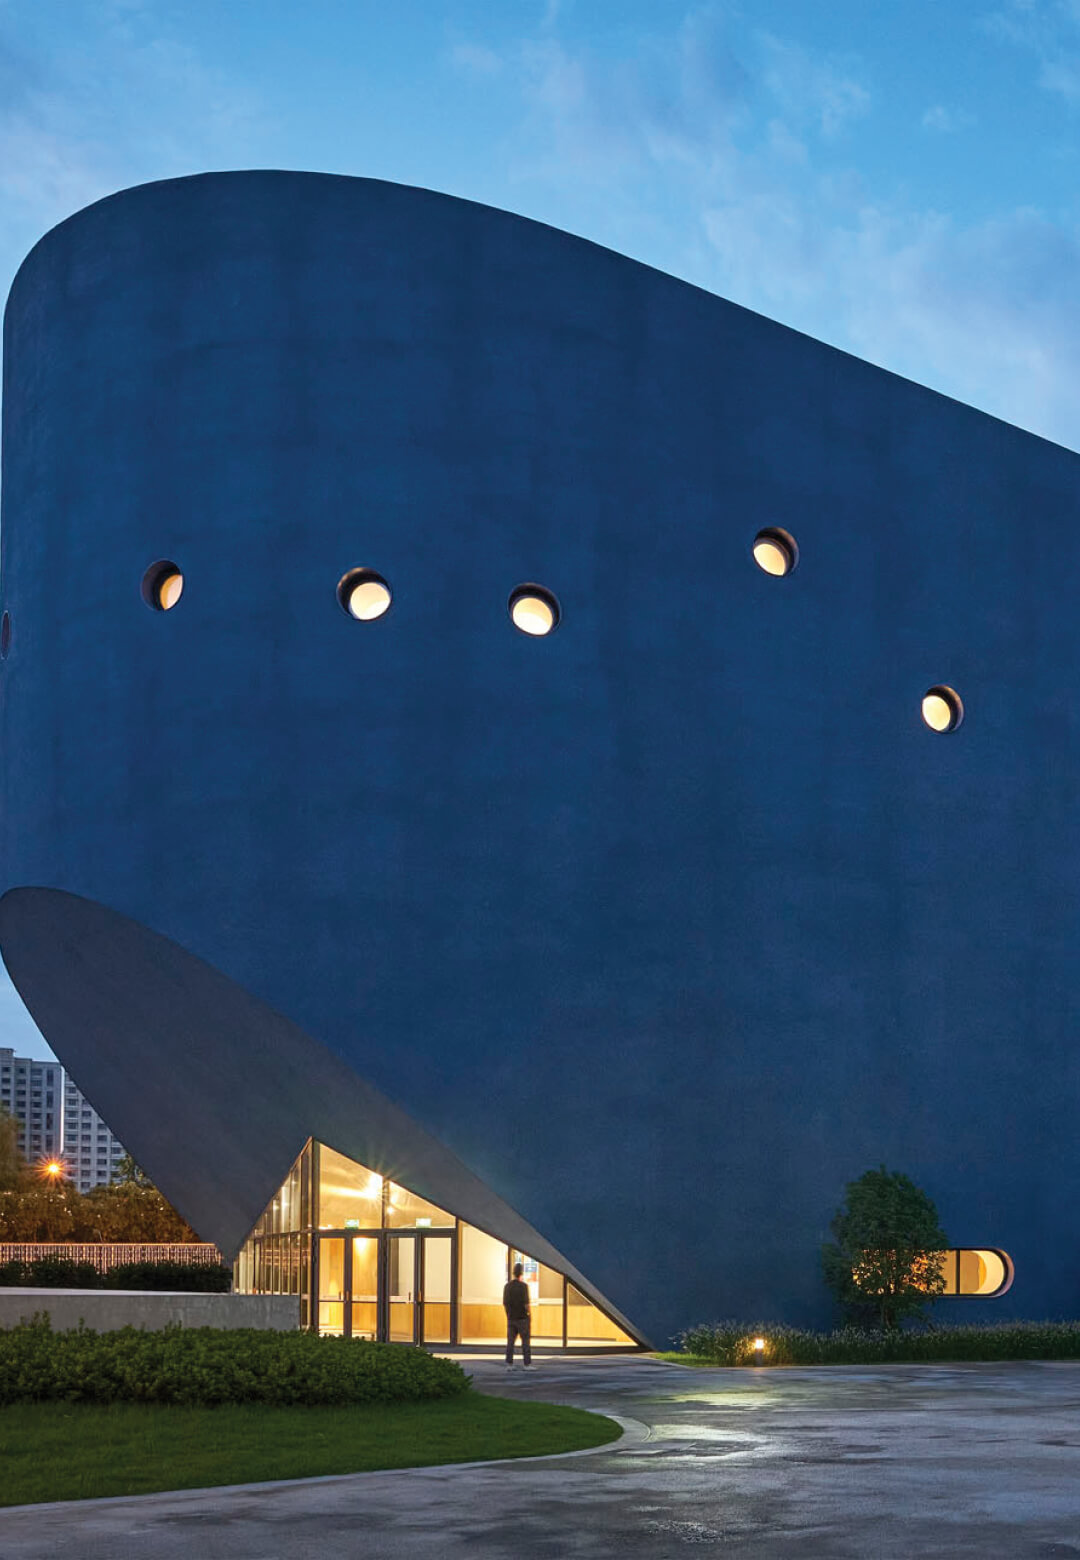 The Pinghe Bibliotheatre by OPEN Architecture appears to emulate the shape of a blue whale or an ocean liner | Pinghe Bibliotheatre| OPEN Architecture | STIRworld